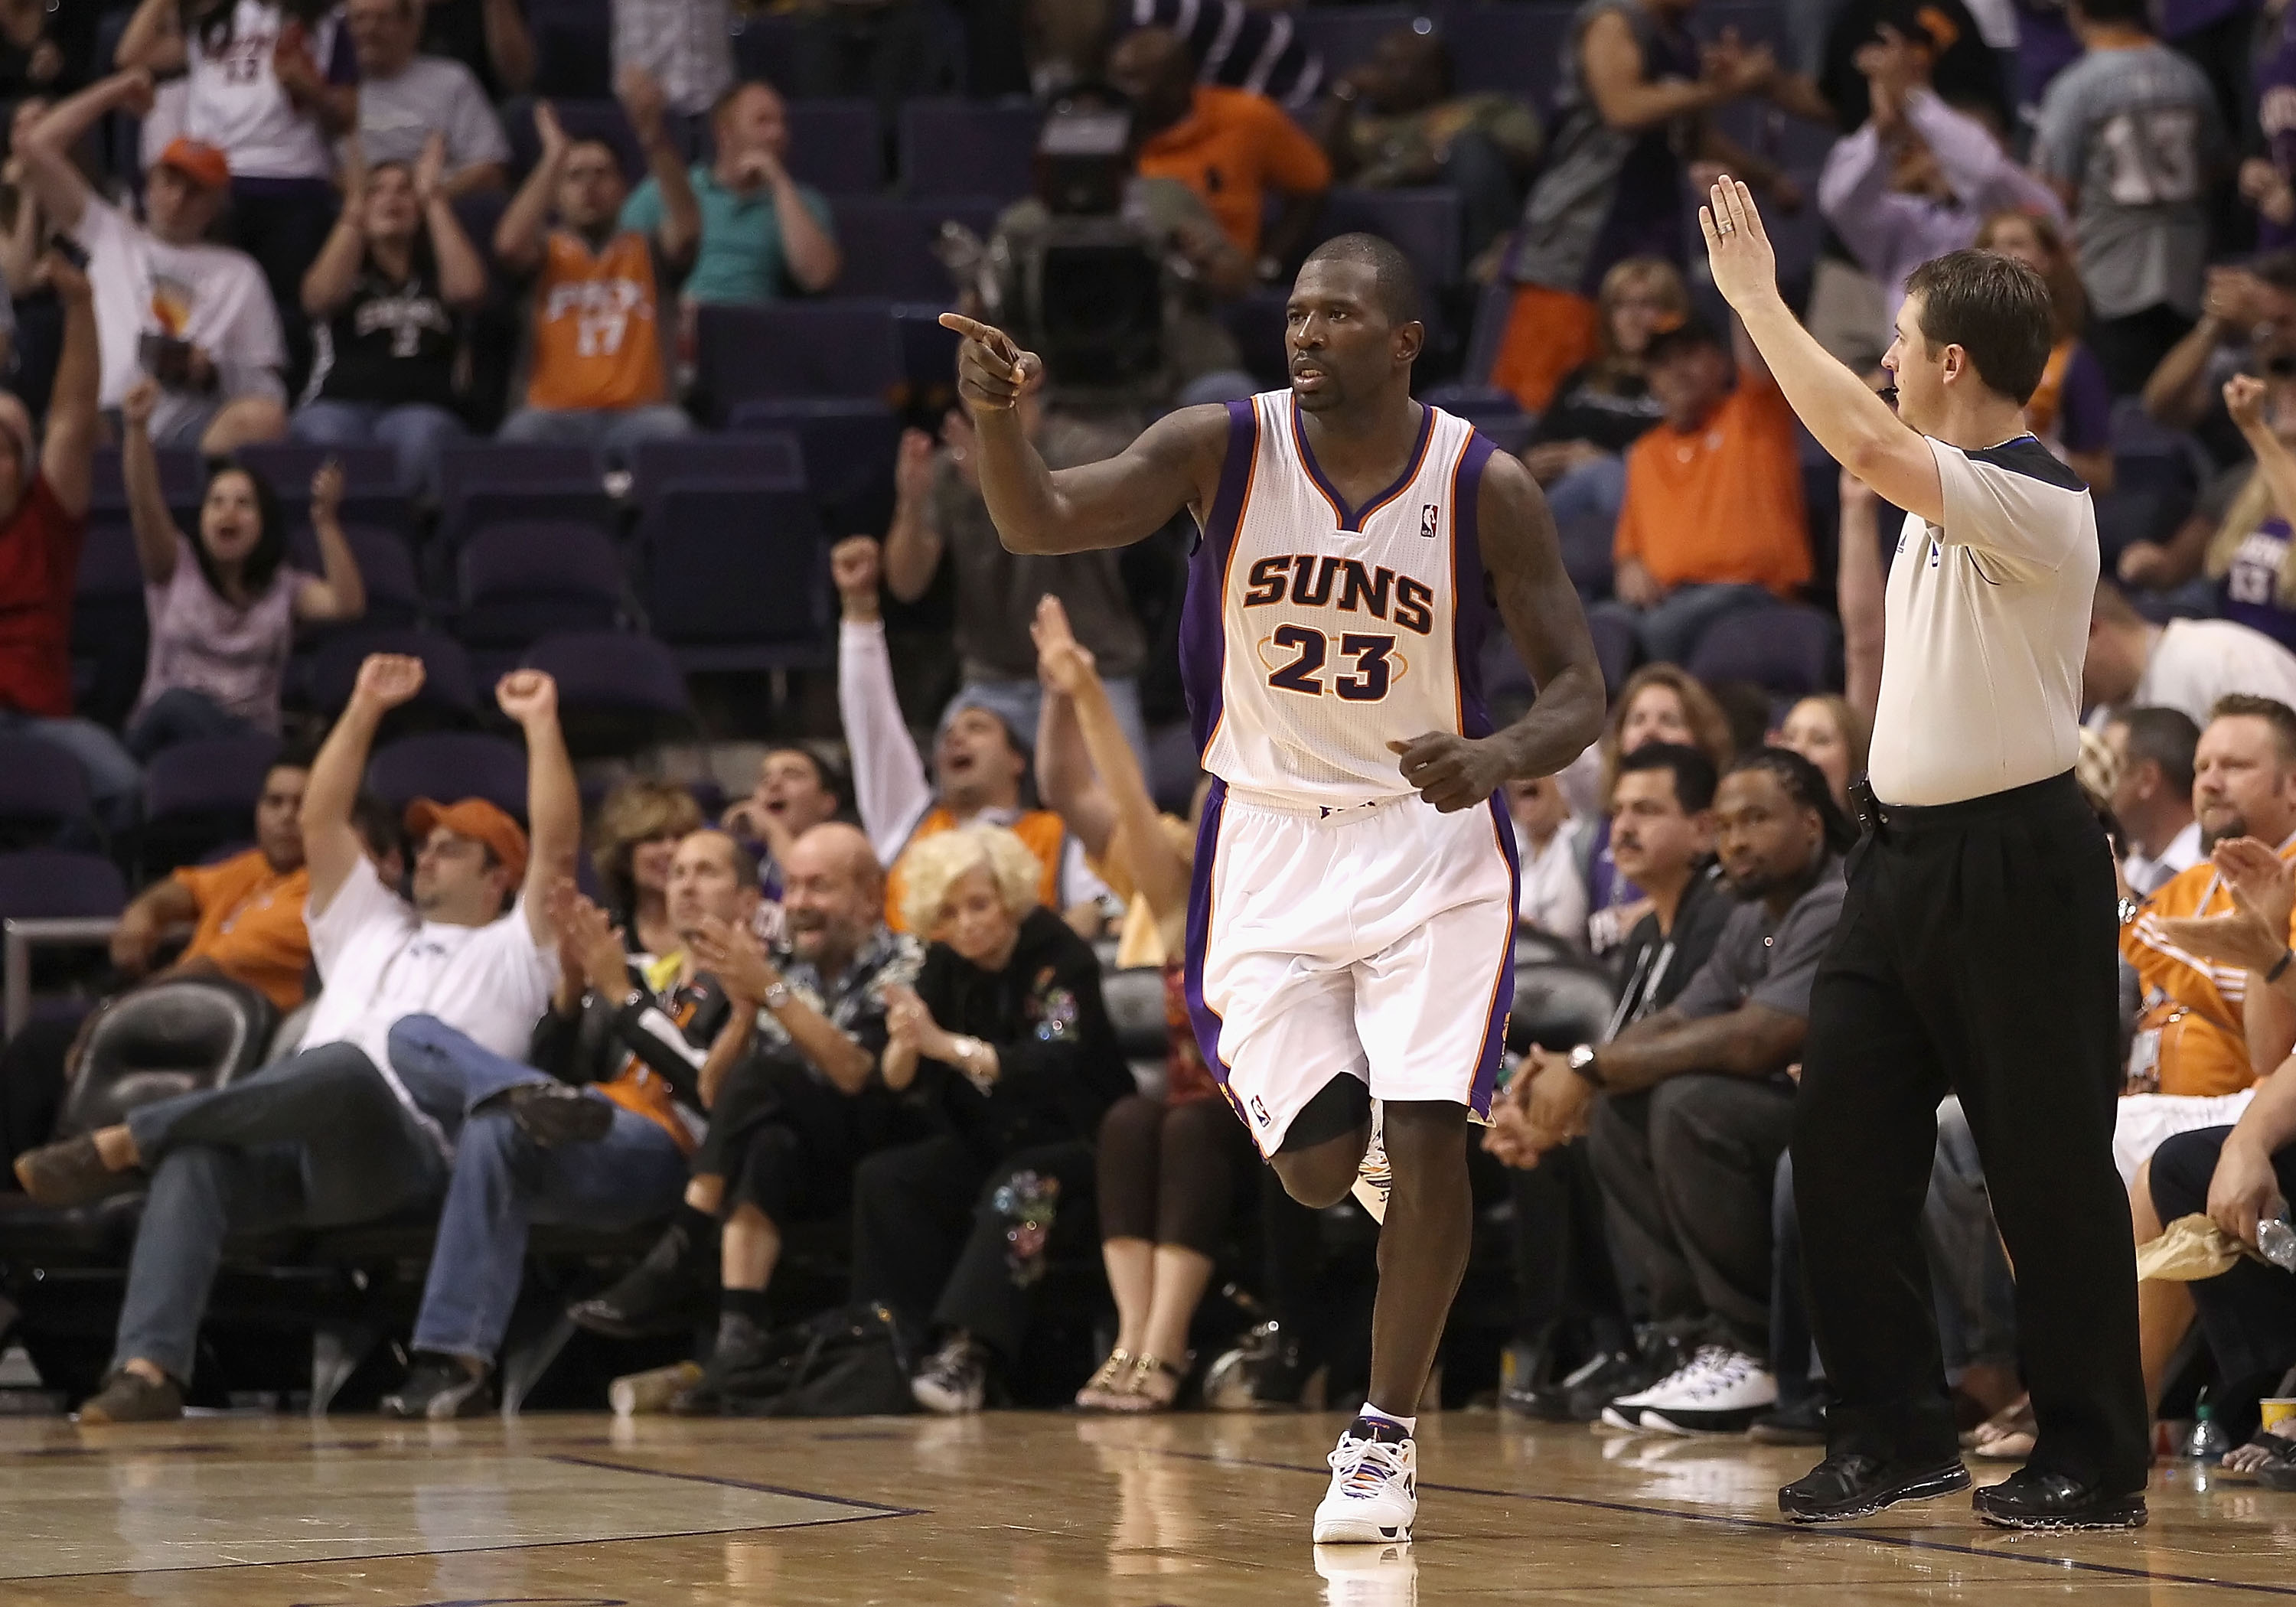 eddca35badad PHOENIX - NOVEMBER 05  Jason Richardson  23 of the Phoenix Suns reacts  after hitting